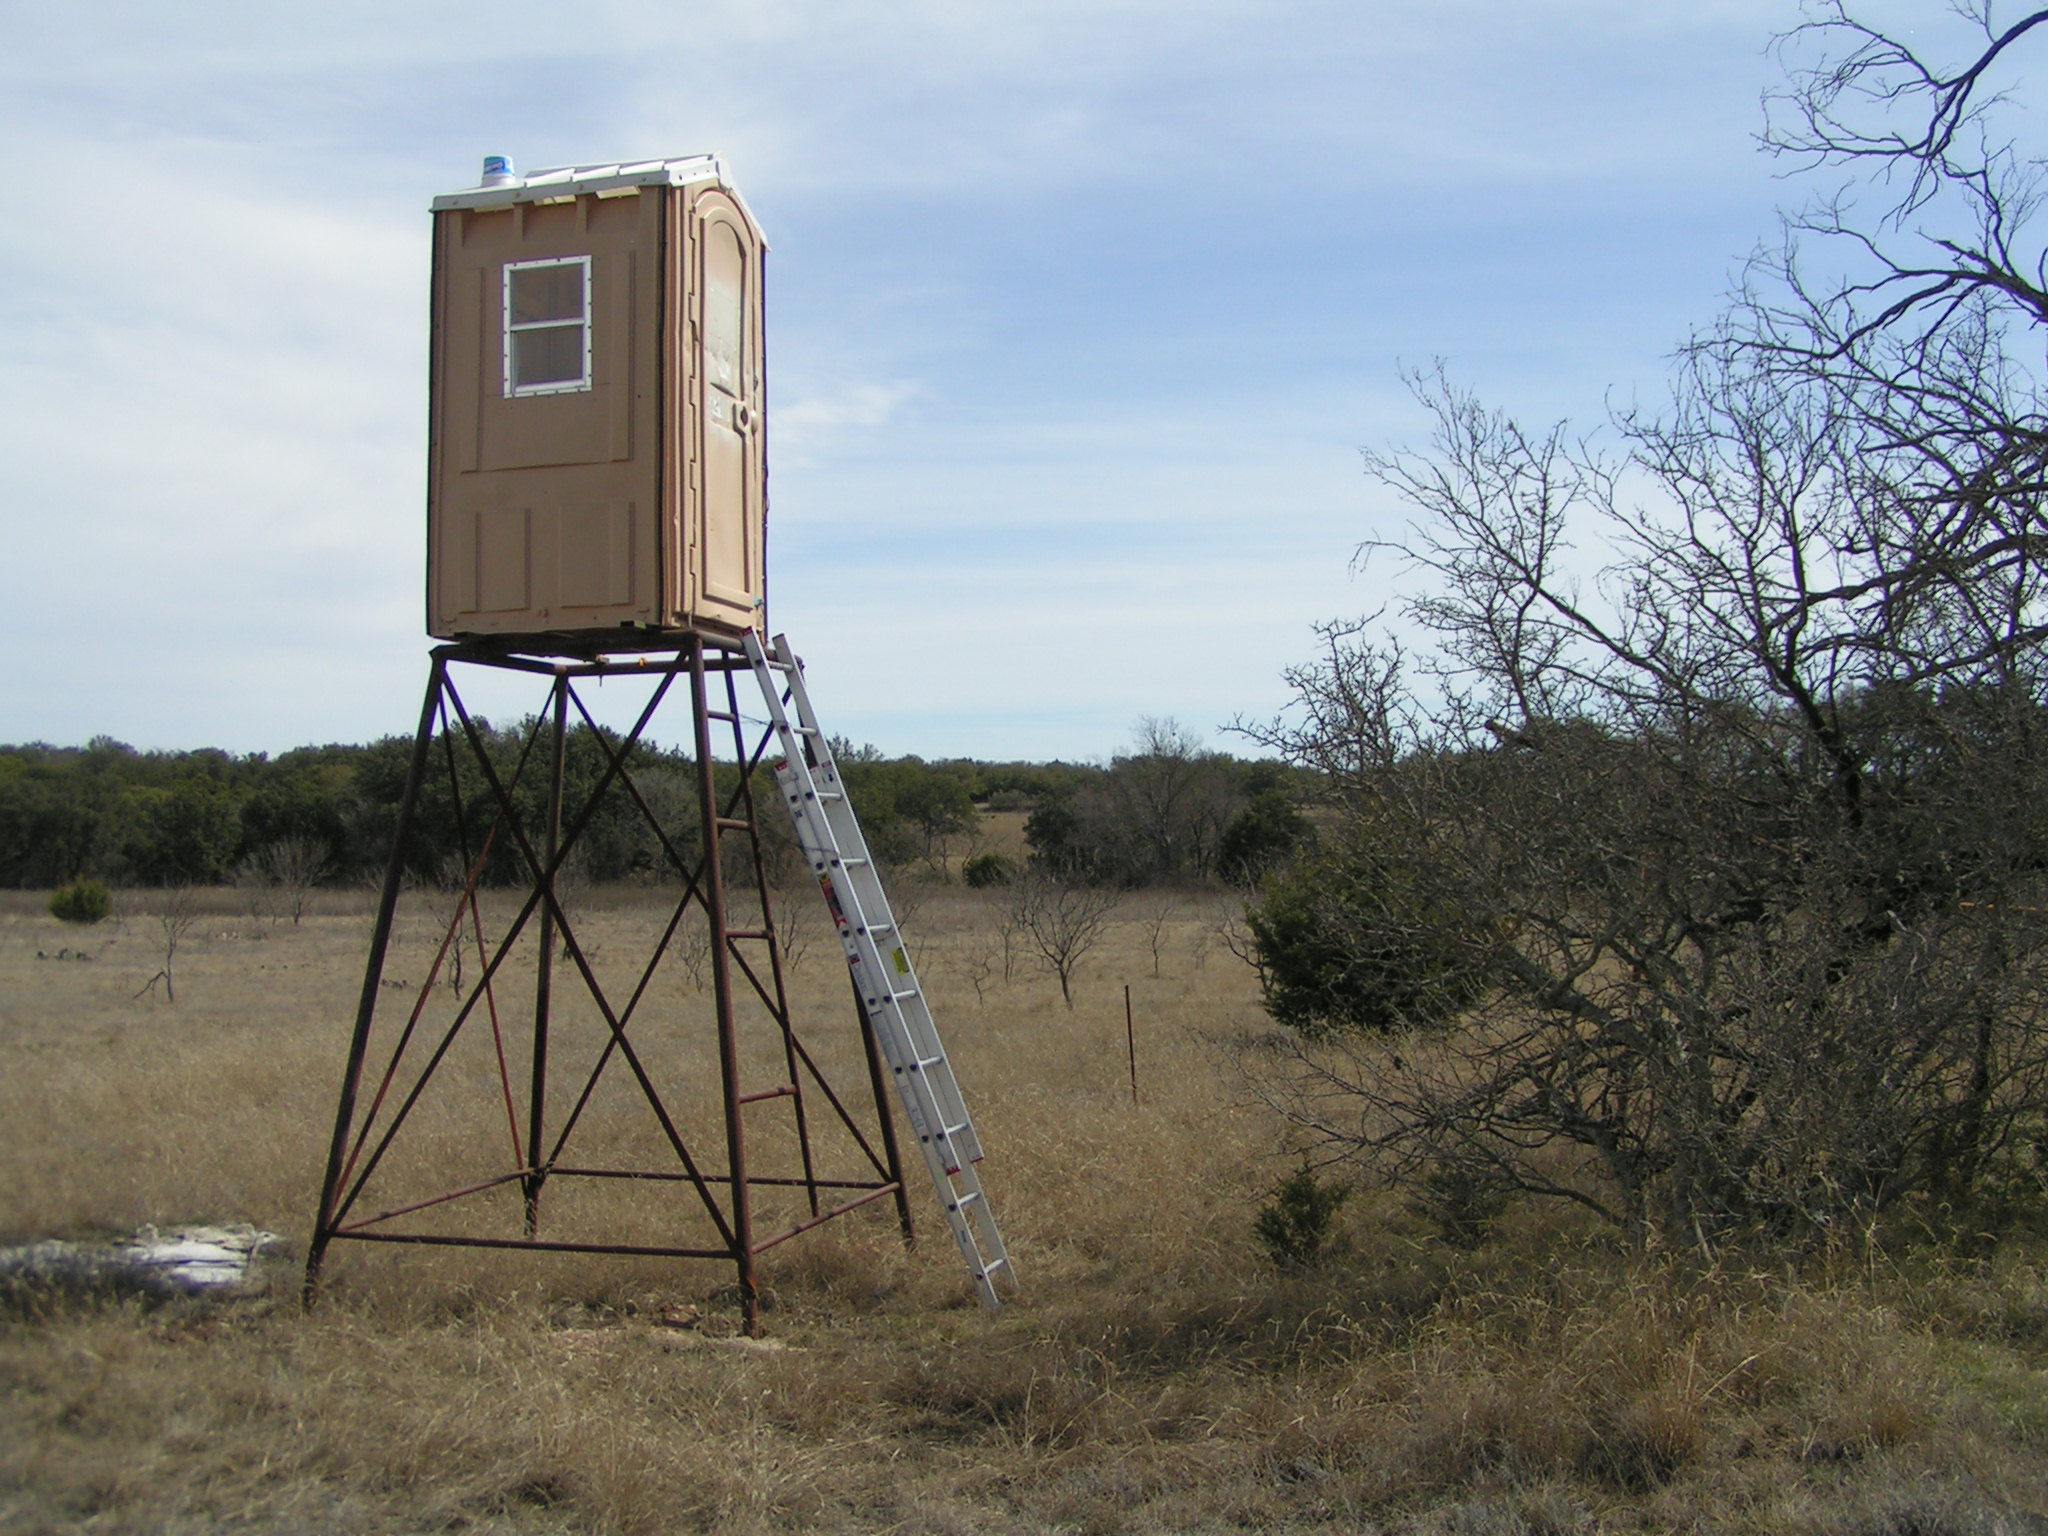 Deer Box Blinds For Sale http://jonbryan.com/index.php?/archives/164-Deer-Stands-The-Porta-Potty-Blind.html